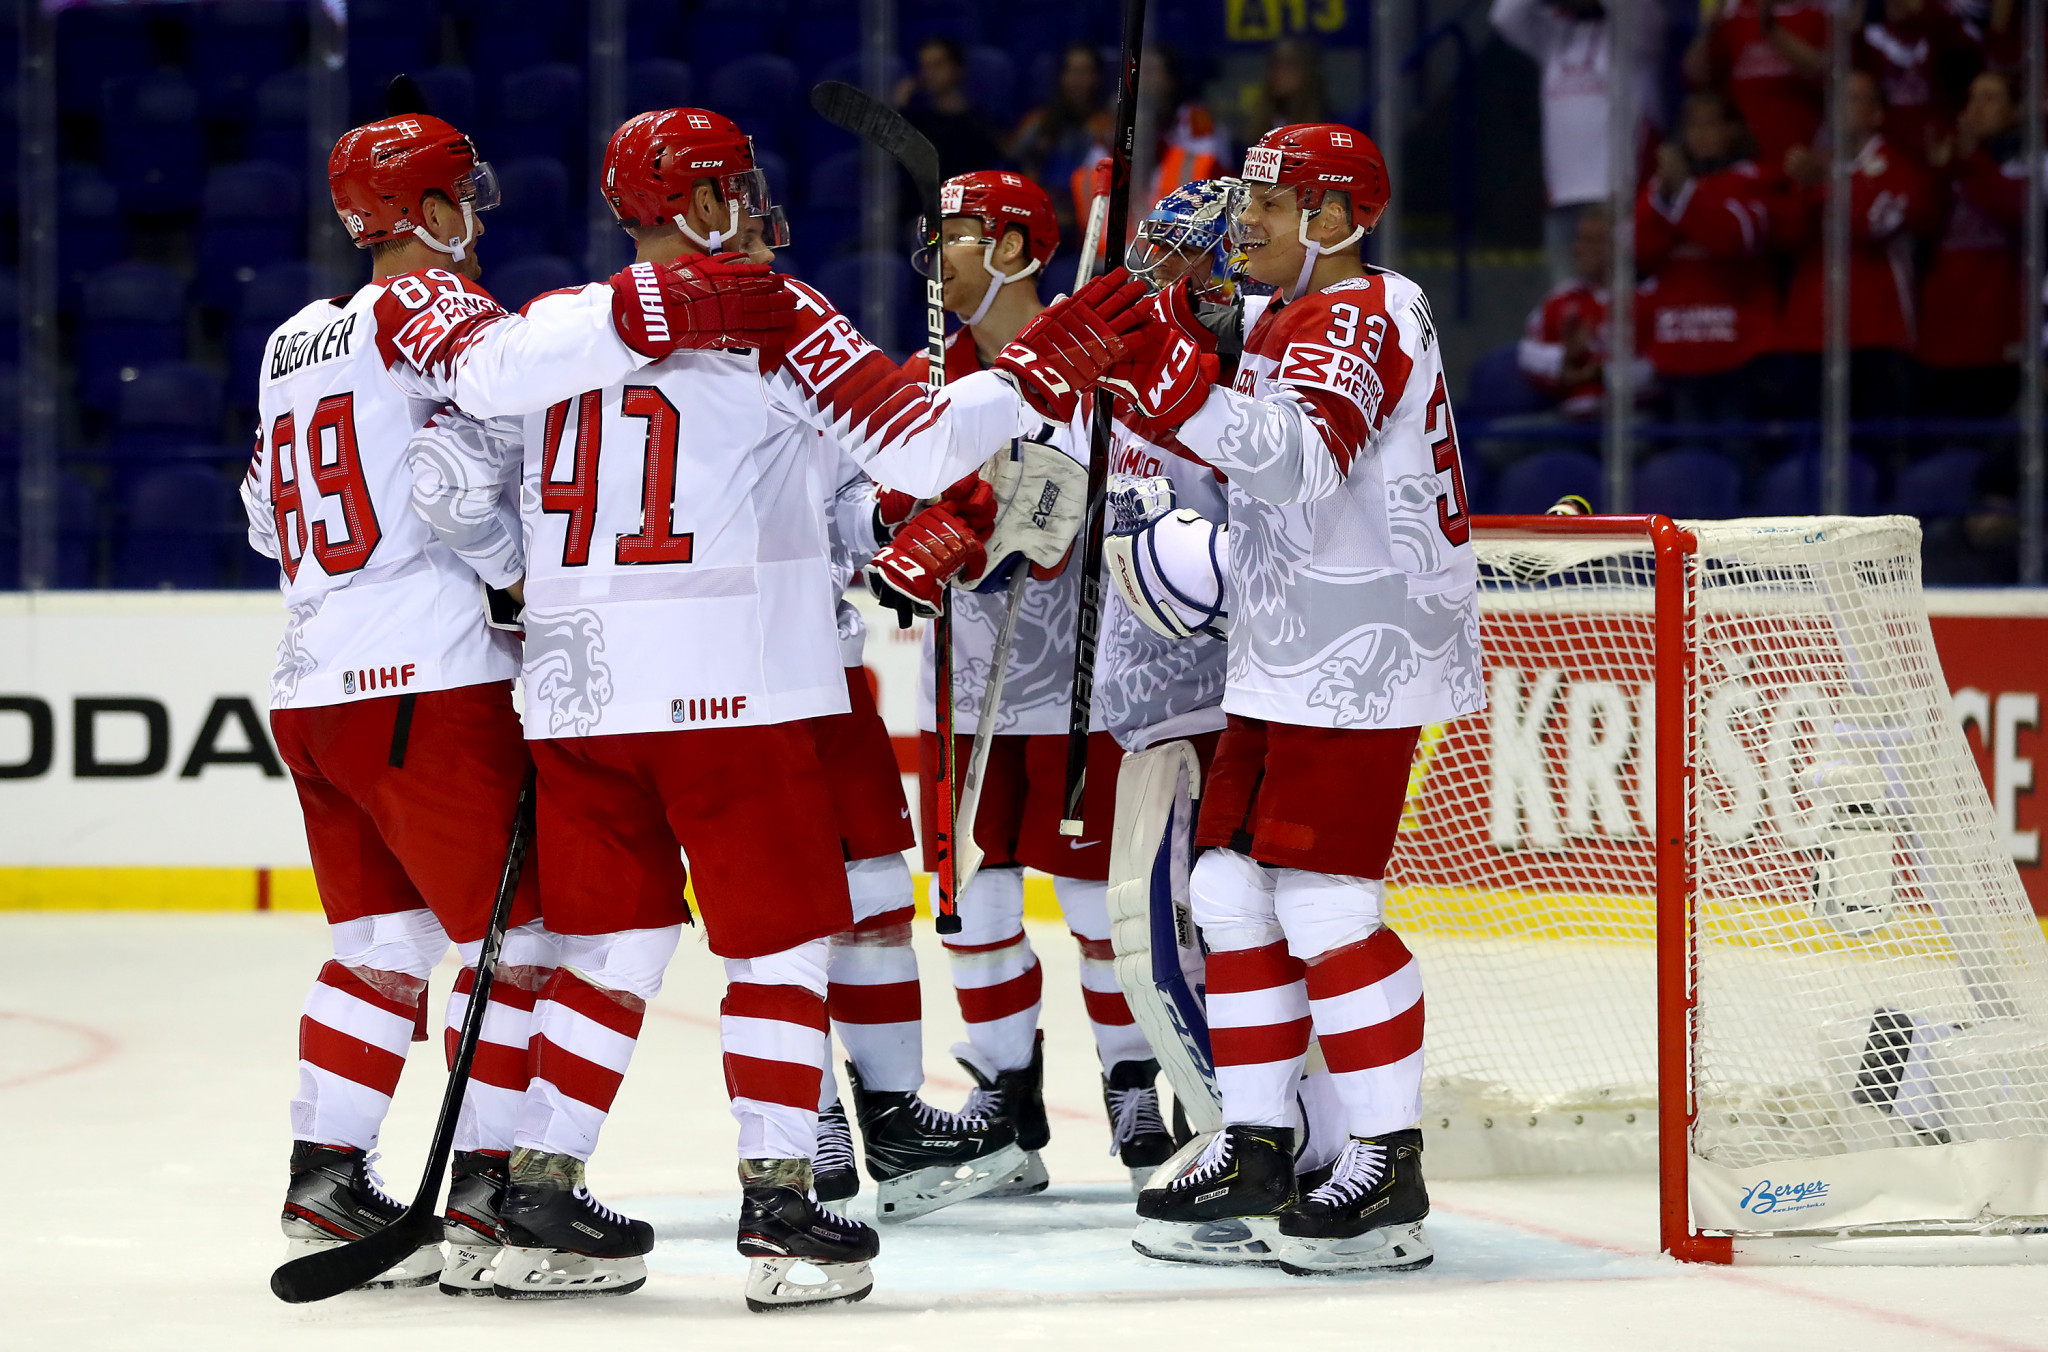 Denmark thrash Great Britain on day five of IIHF World Championship